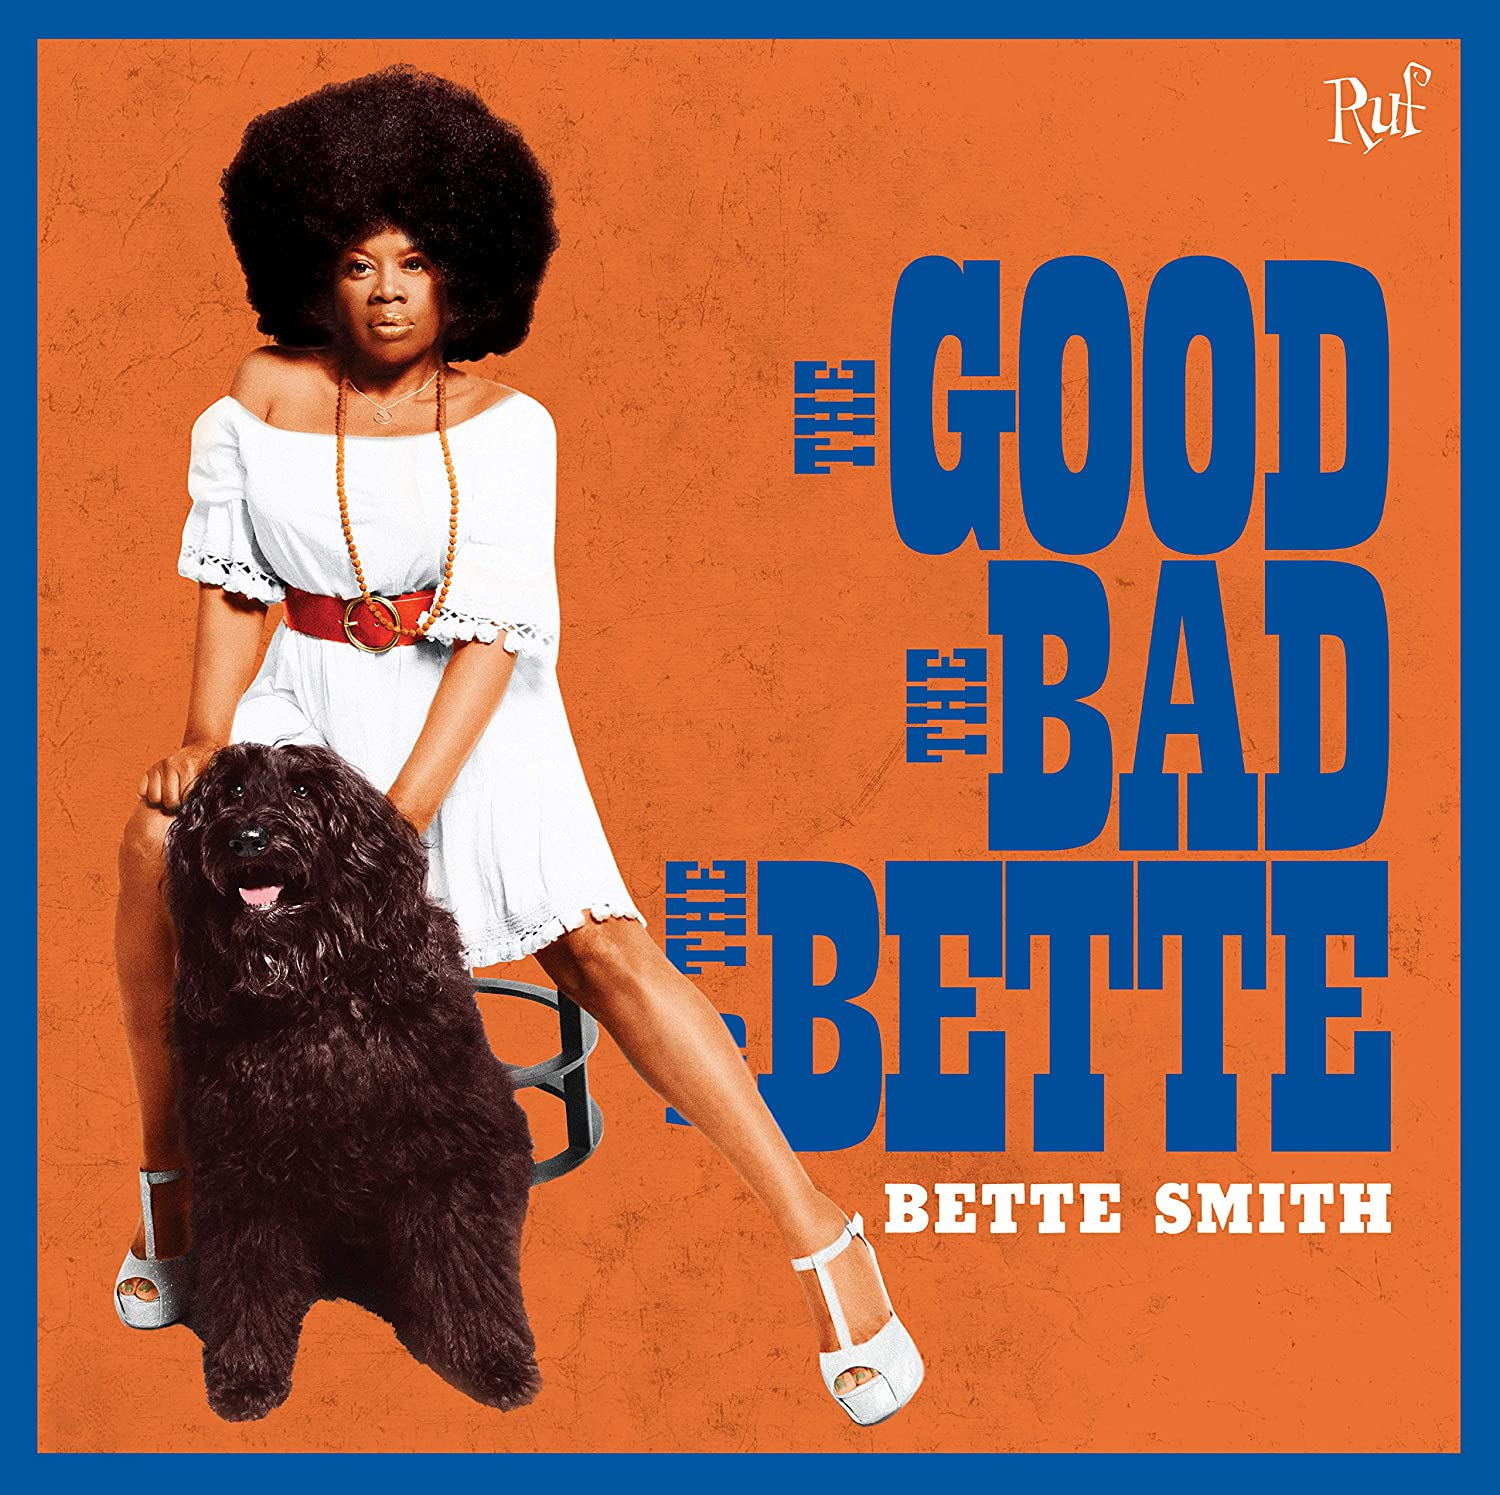 Good, The Bad & The Bette: Bette Smith, Bette Smith: Amazon.fr: Musique